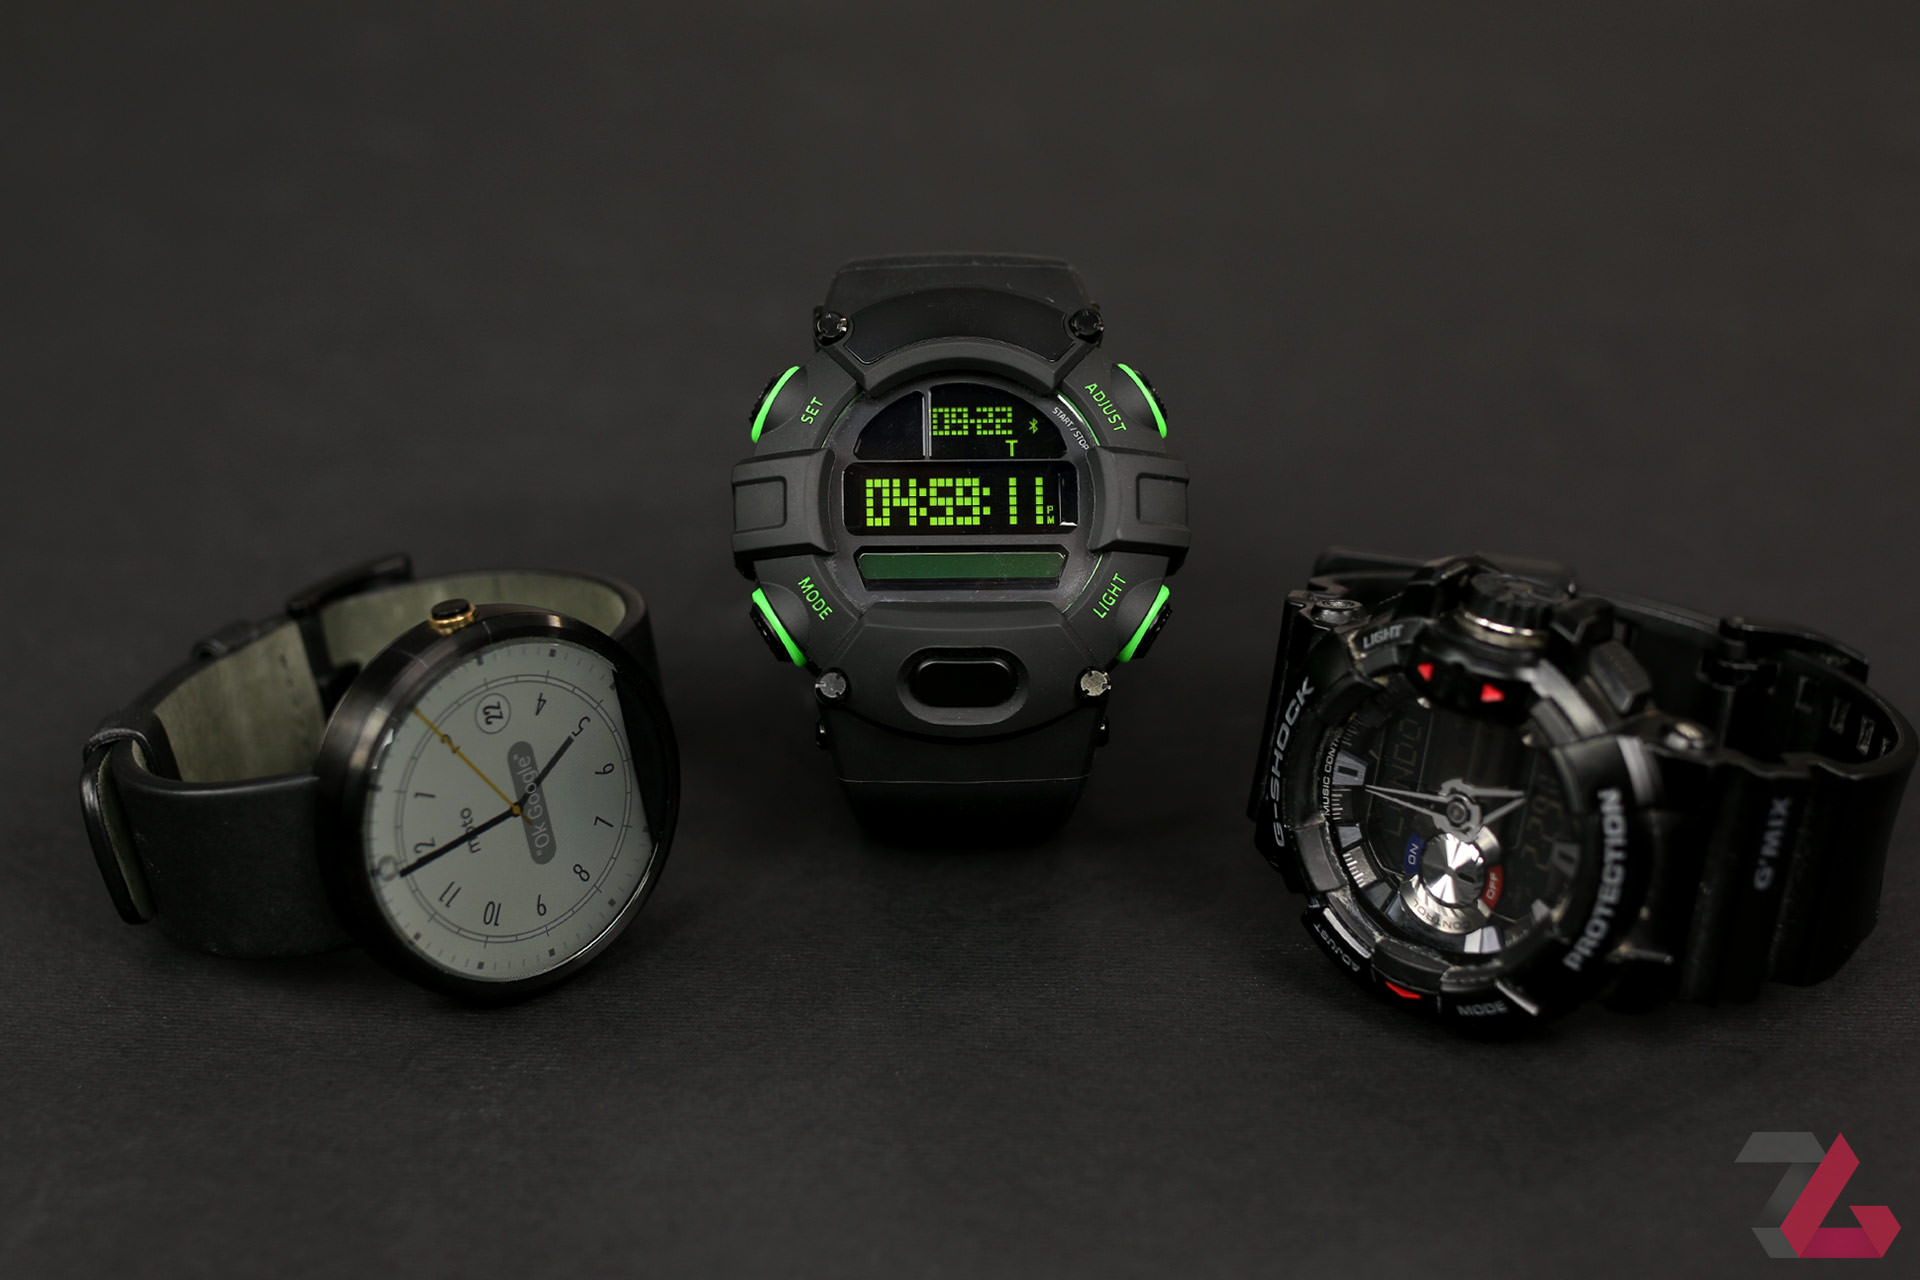 razer watch